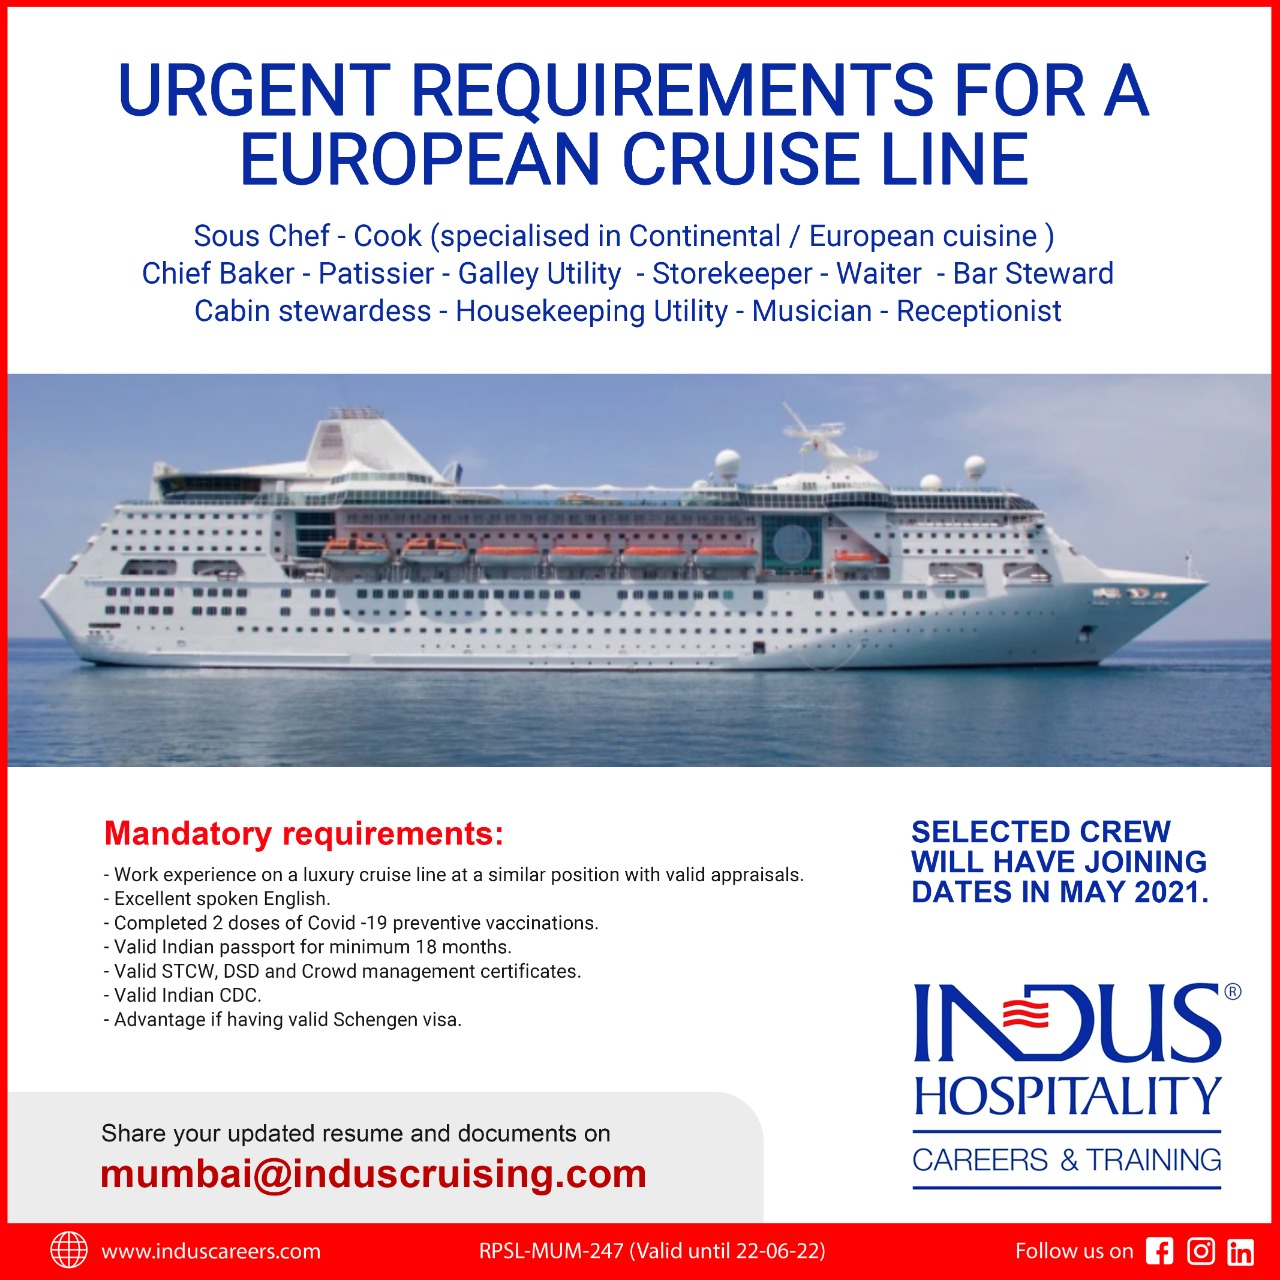 Requirement for European cruiseline